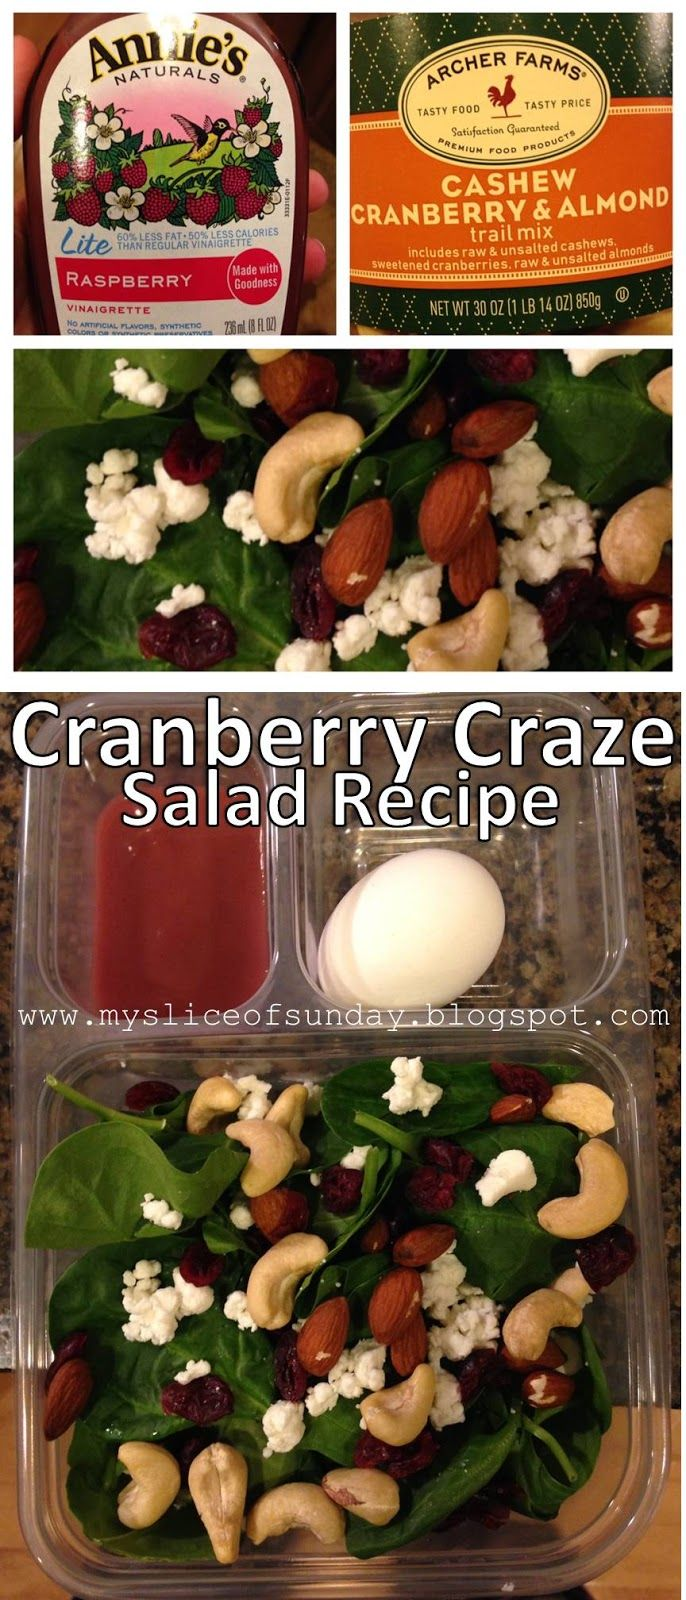 This week's meal prep (for lunch) Cranberry Craze Organic Salad Recipe - simple, delicious and healthy. If you want to start eating clean (clean eating) give this salad a try! Great for the divided lunch trays, and throw in a hard boiled egg for some extra protein :) My Slice of Sunday